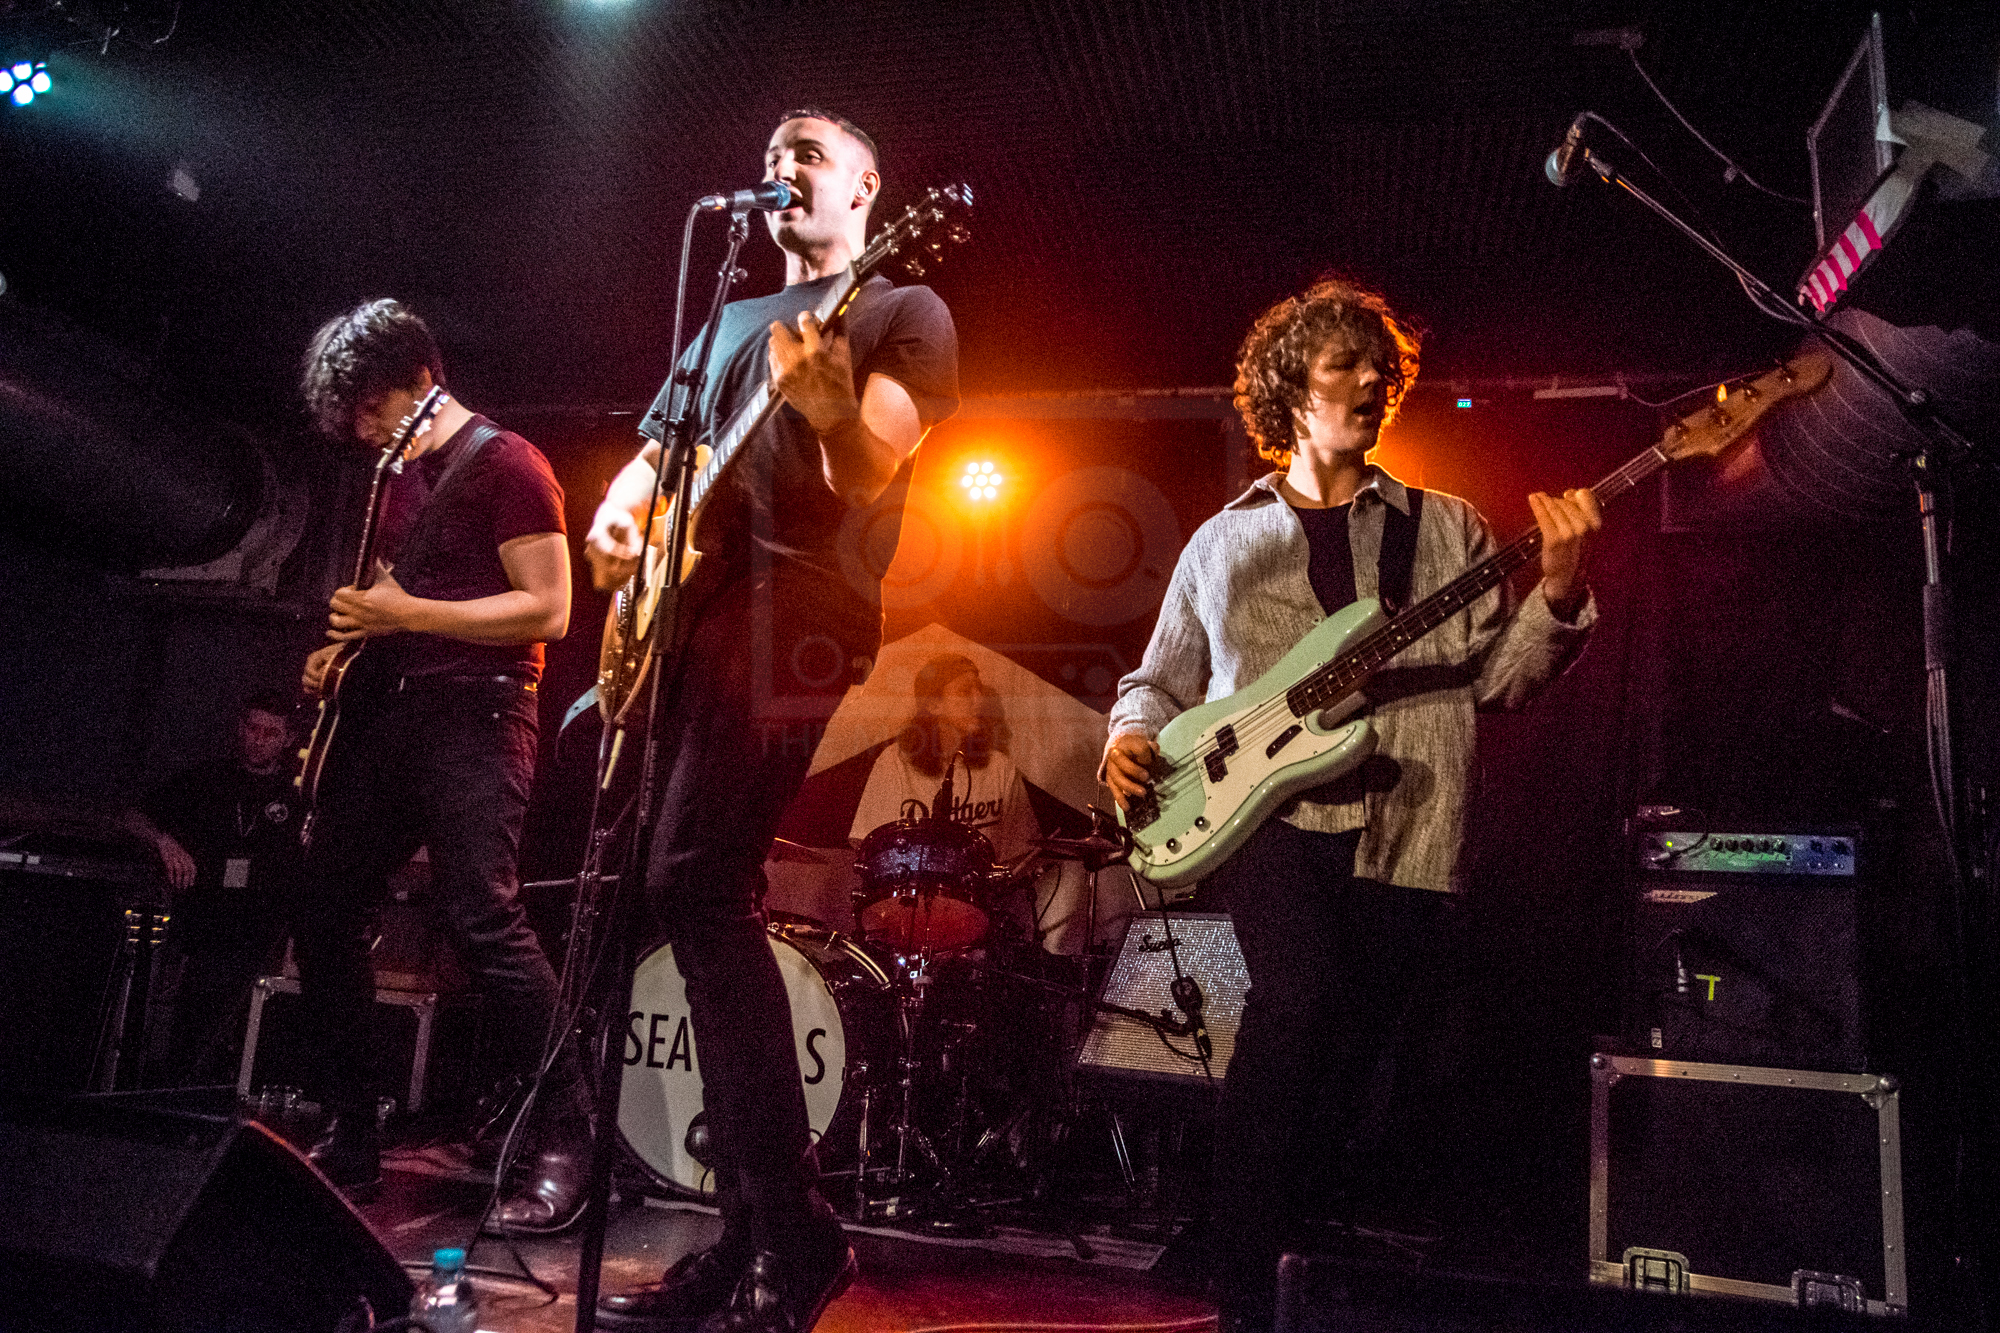 SEA GIRLS PERFORMING AT EDINBURGH'S MASH HOUSE - 28.02.2019  PICTURE BY: STEPHEN WILSON PHOTOGRAPHY